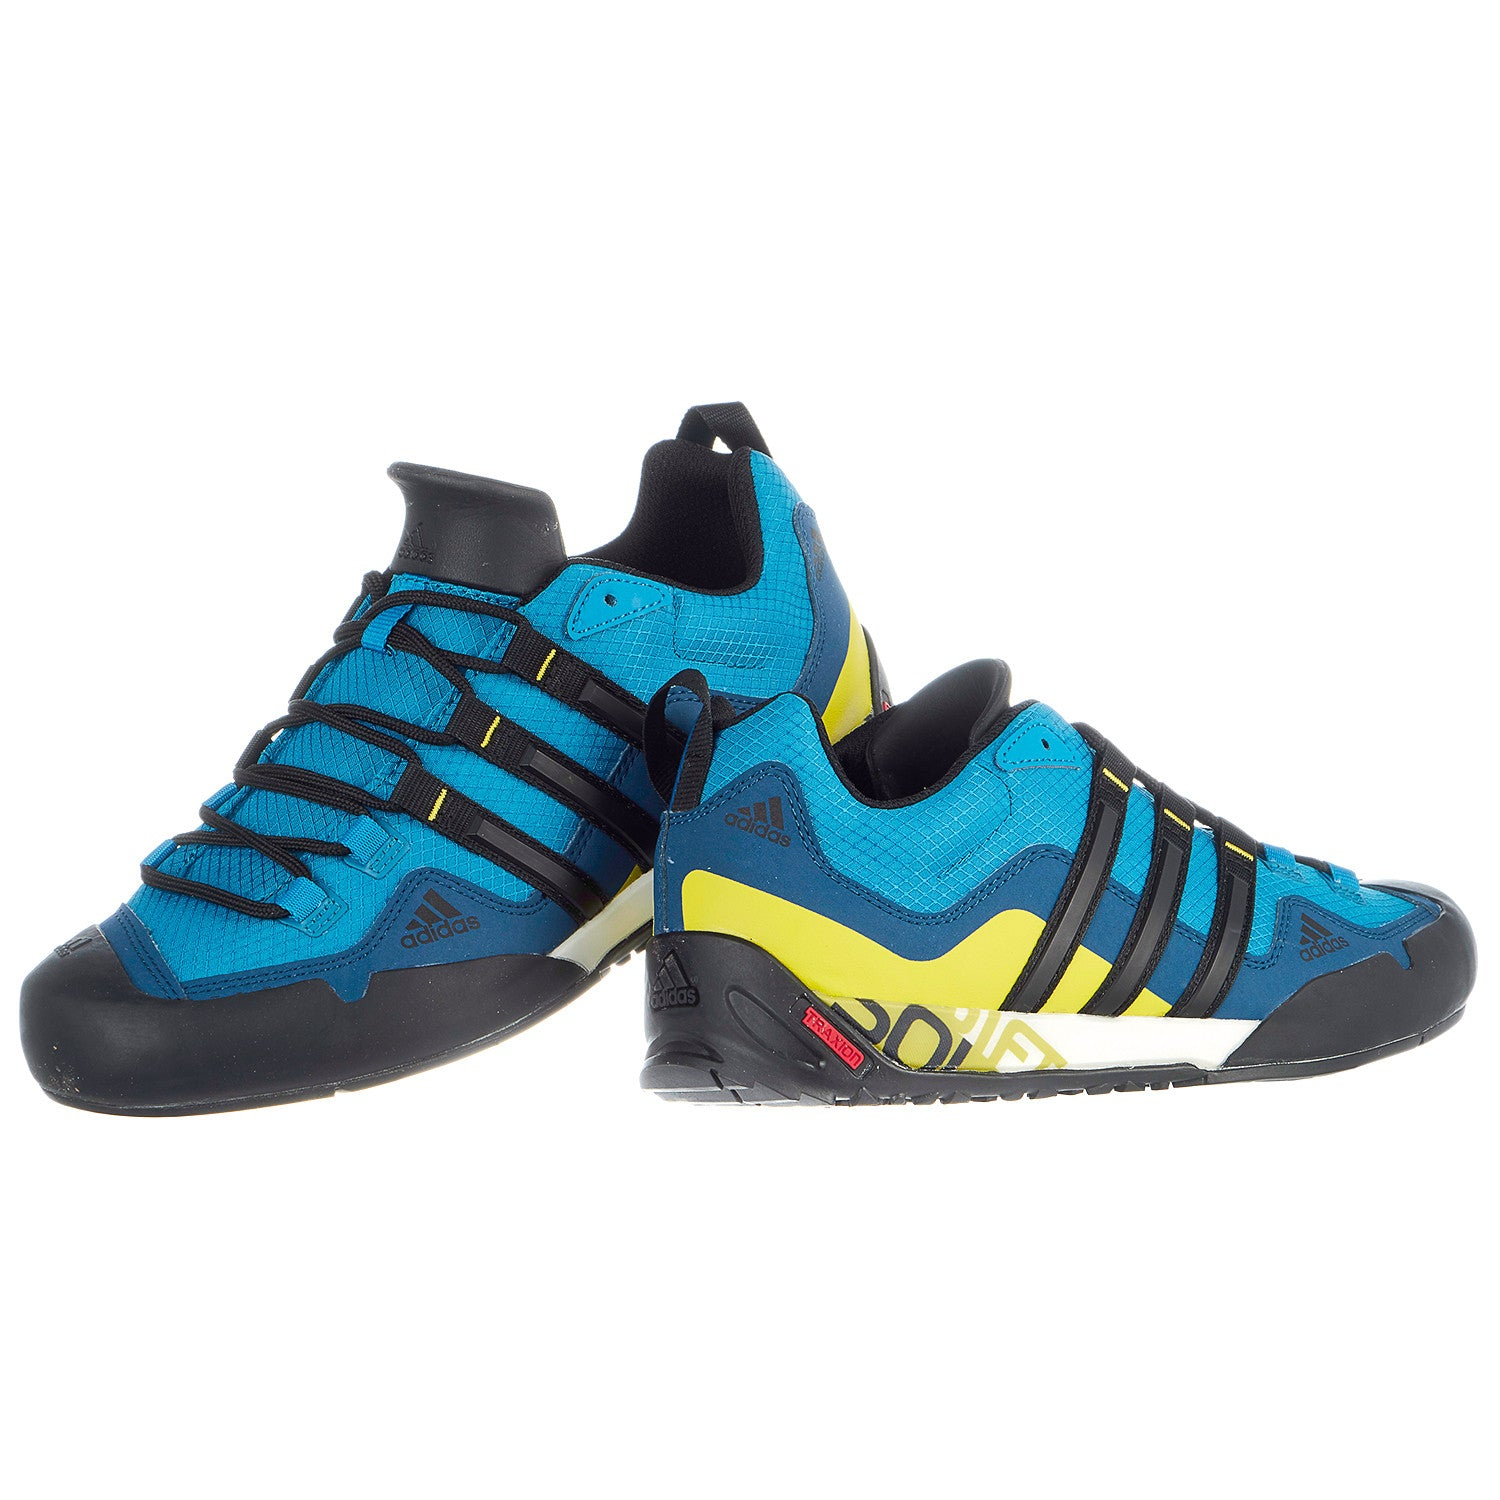 Adidas Outdoor Terrex Swift Solo Approach Shoe Men S